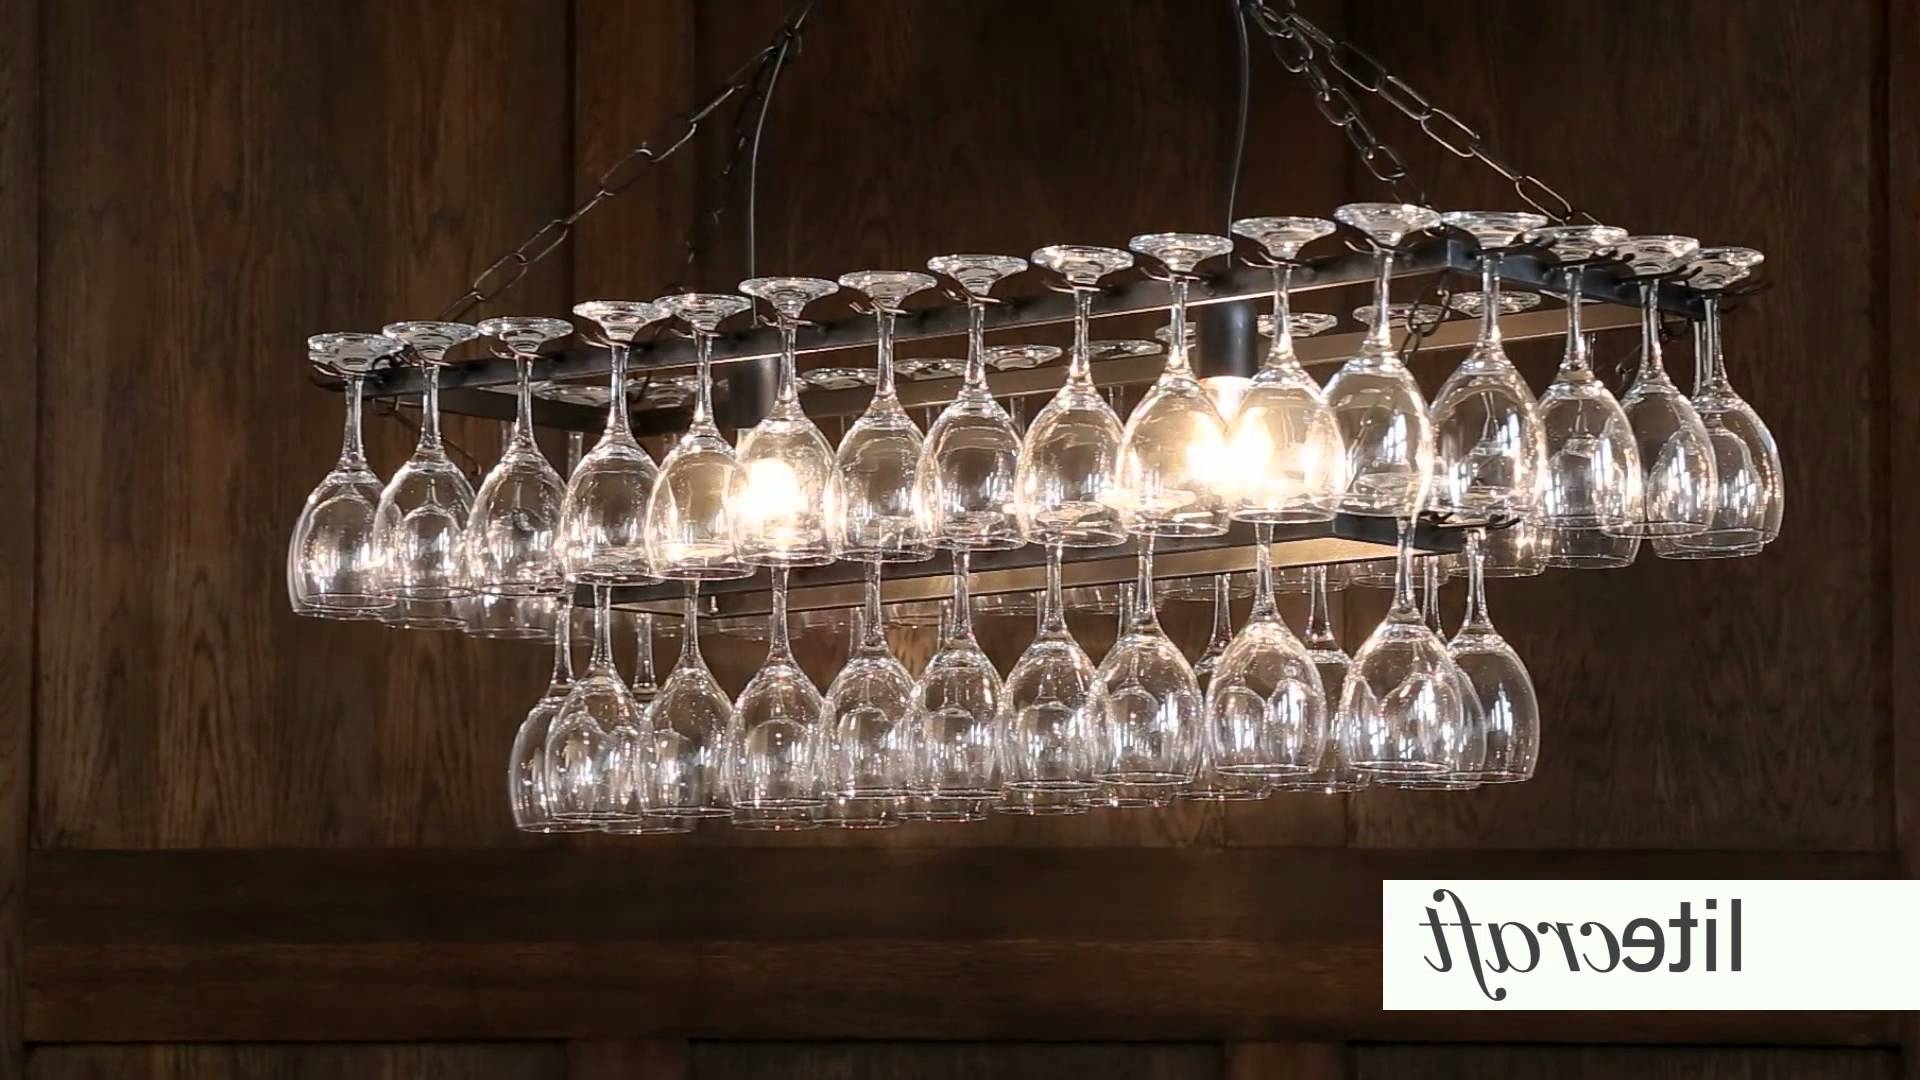 Litecraft – Lighting Your Home – Youtube For Popular Glass Chandeliers (View 11 of 20)